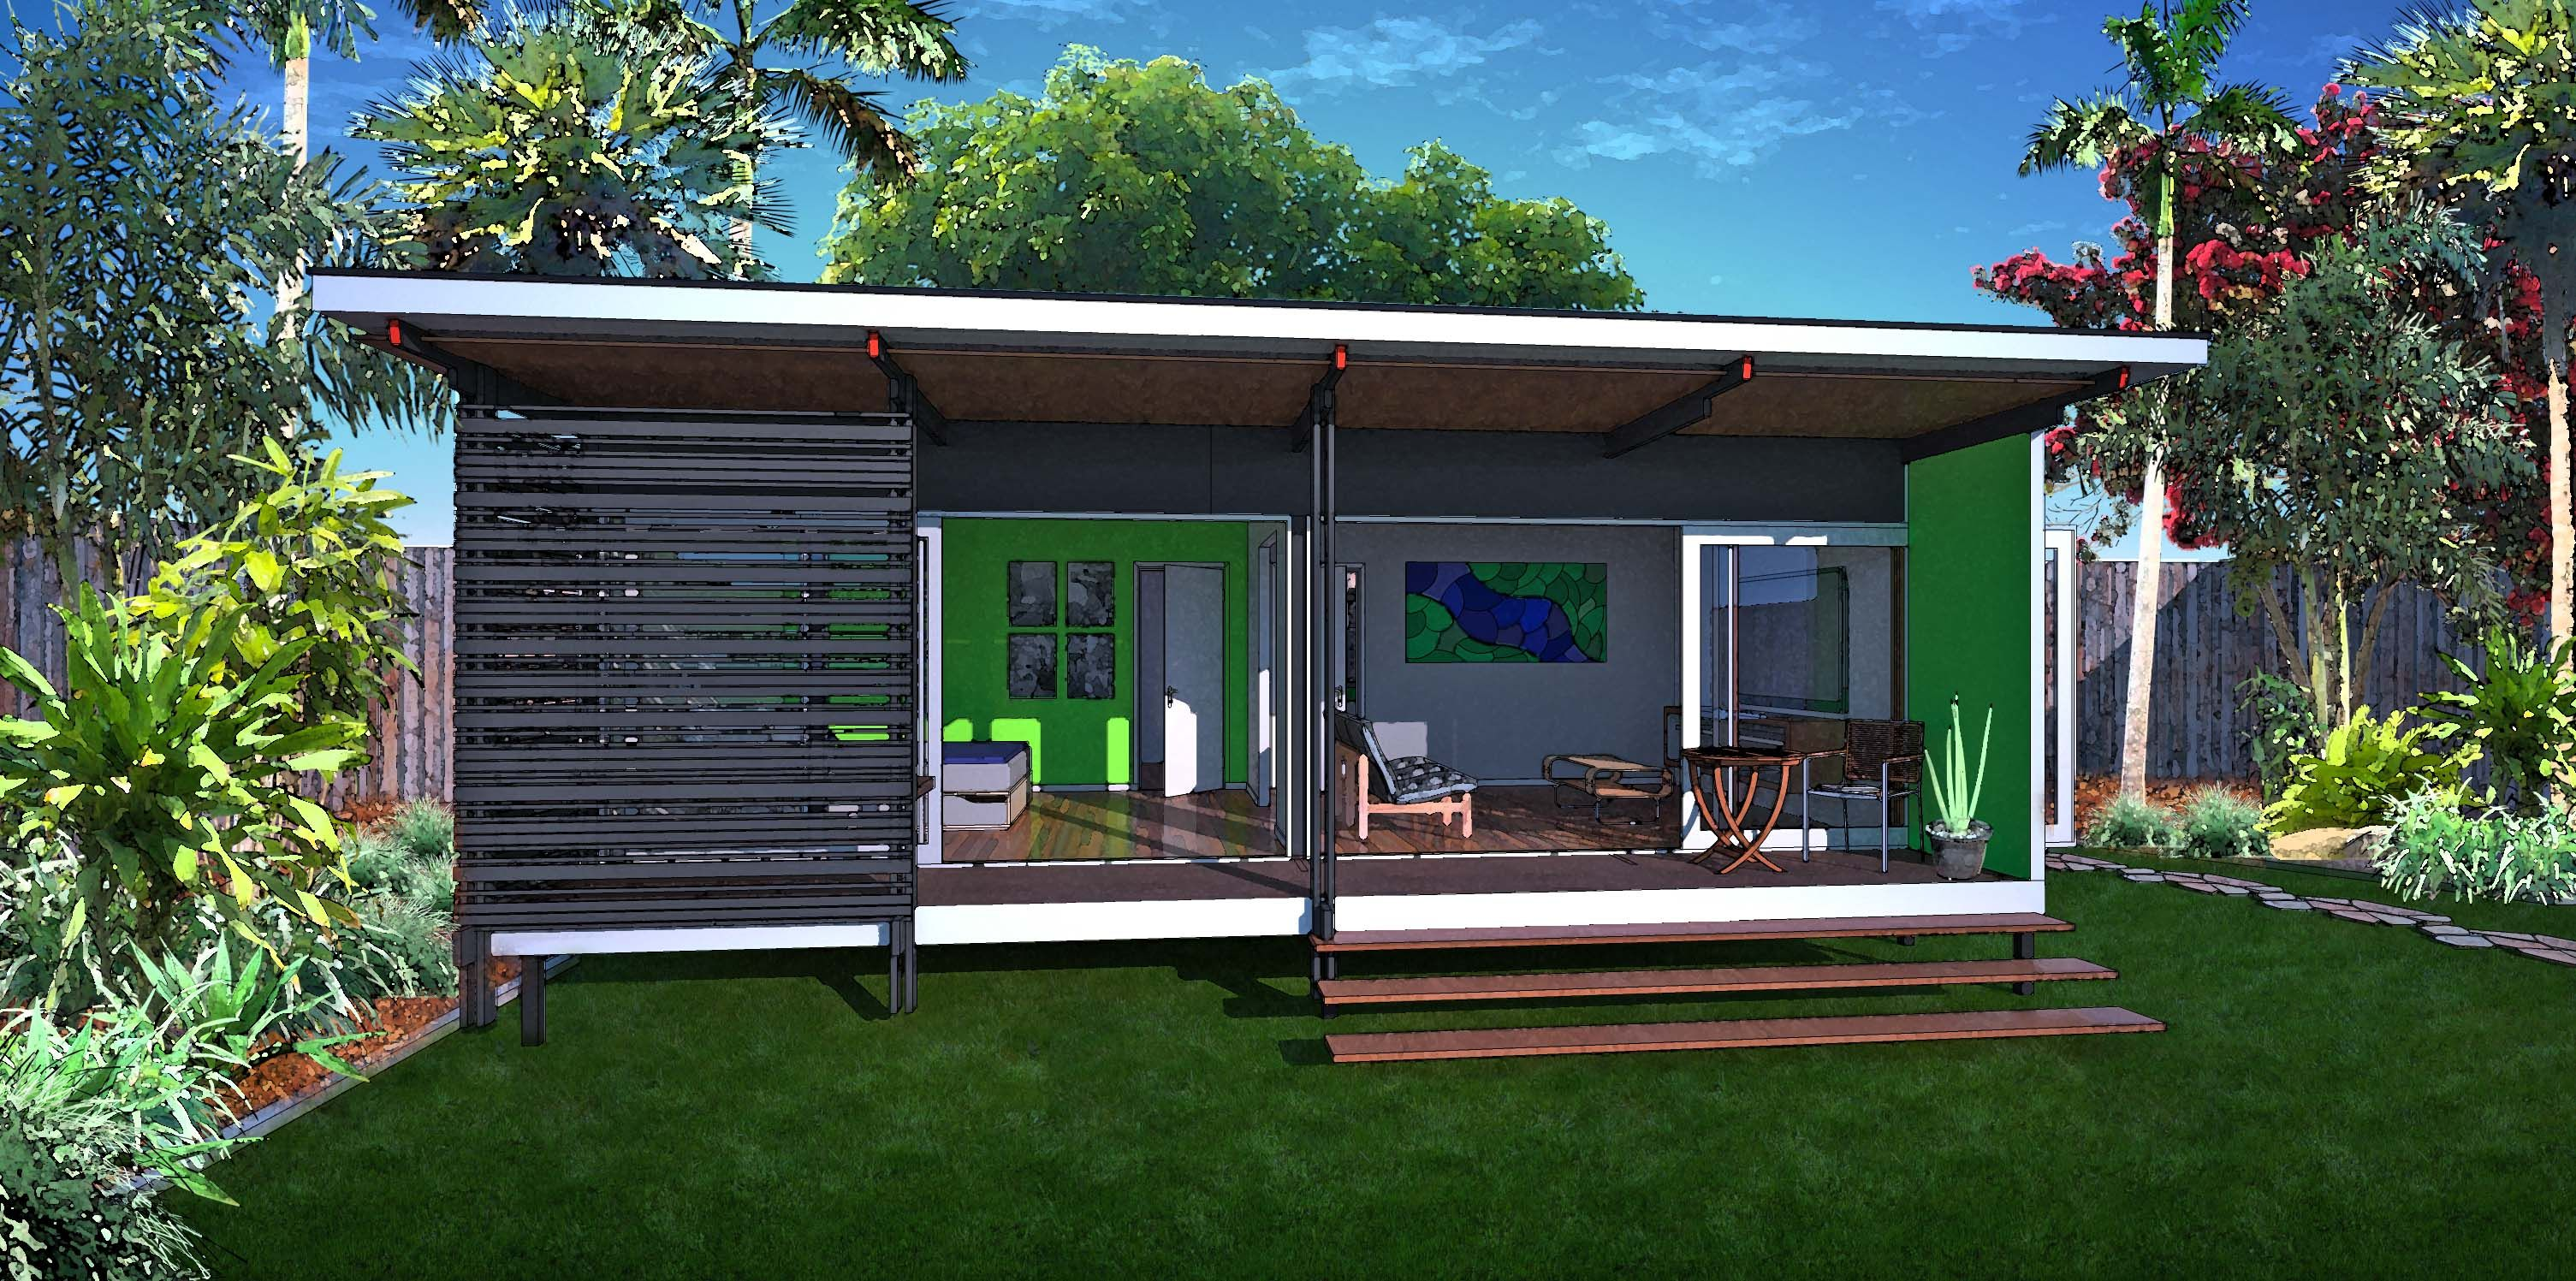 Granny flat designs google search house designs for Modular granny flat california